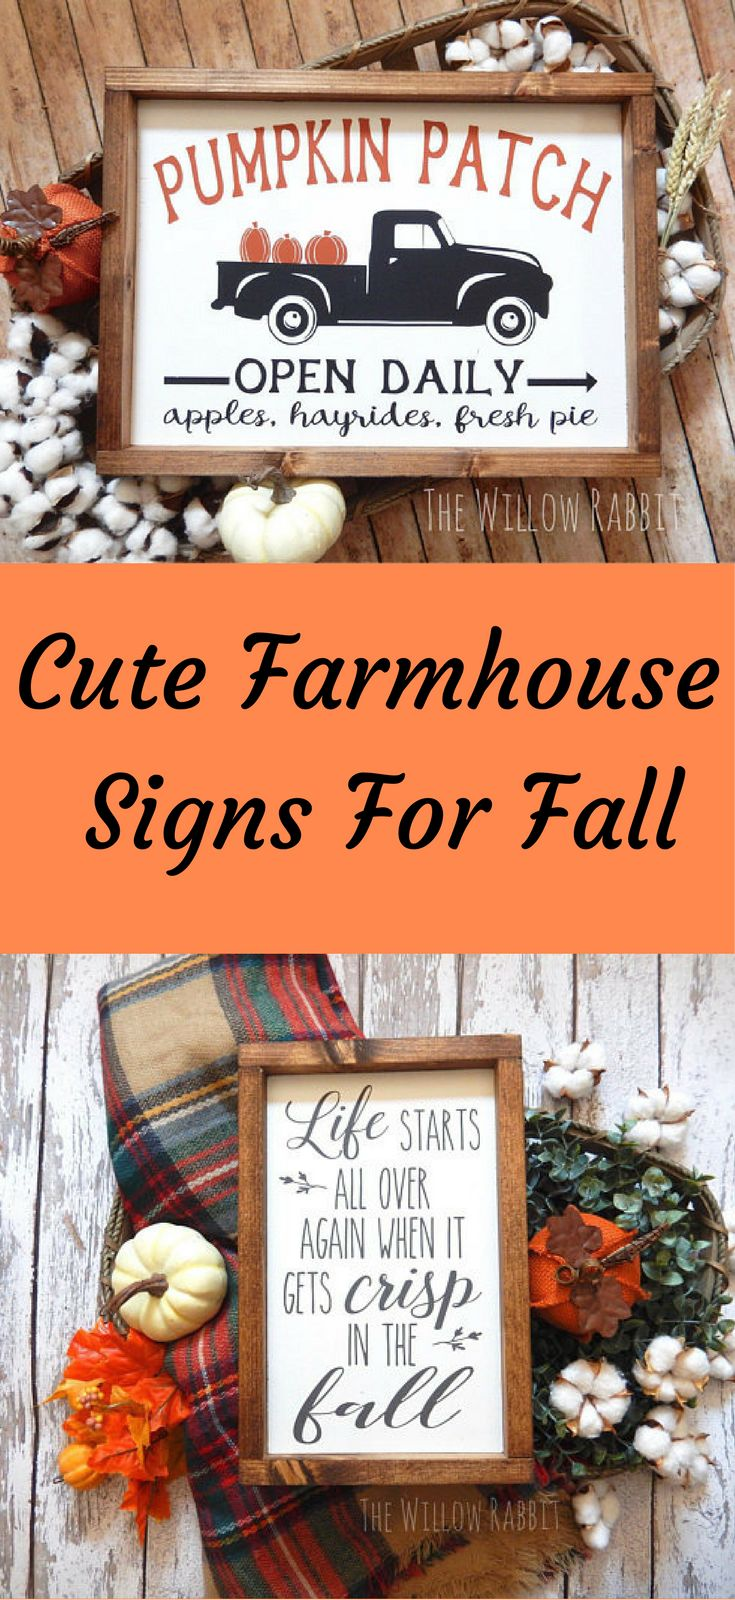 Primitive stencil home sweet home 12x12 for painting signs crafts - Add A Cute Touch Of Fall To Your Home With These Farmhouse Style Signs